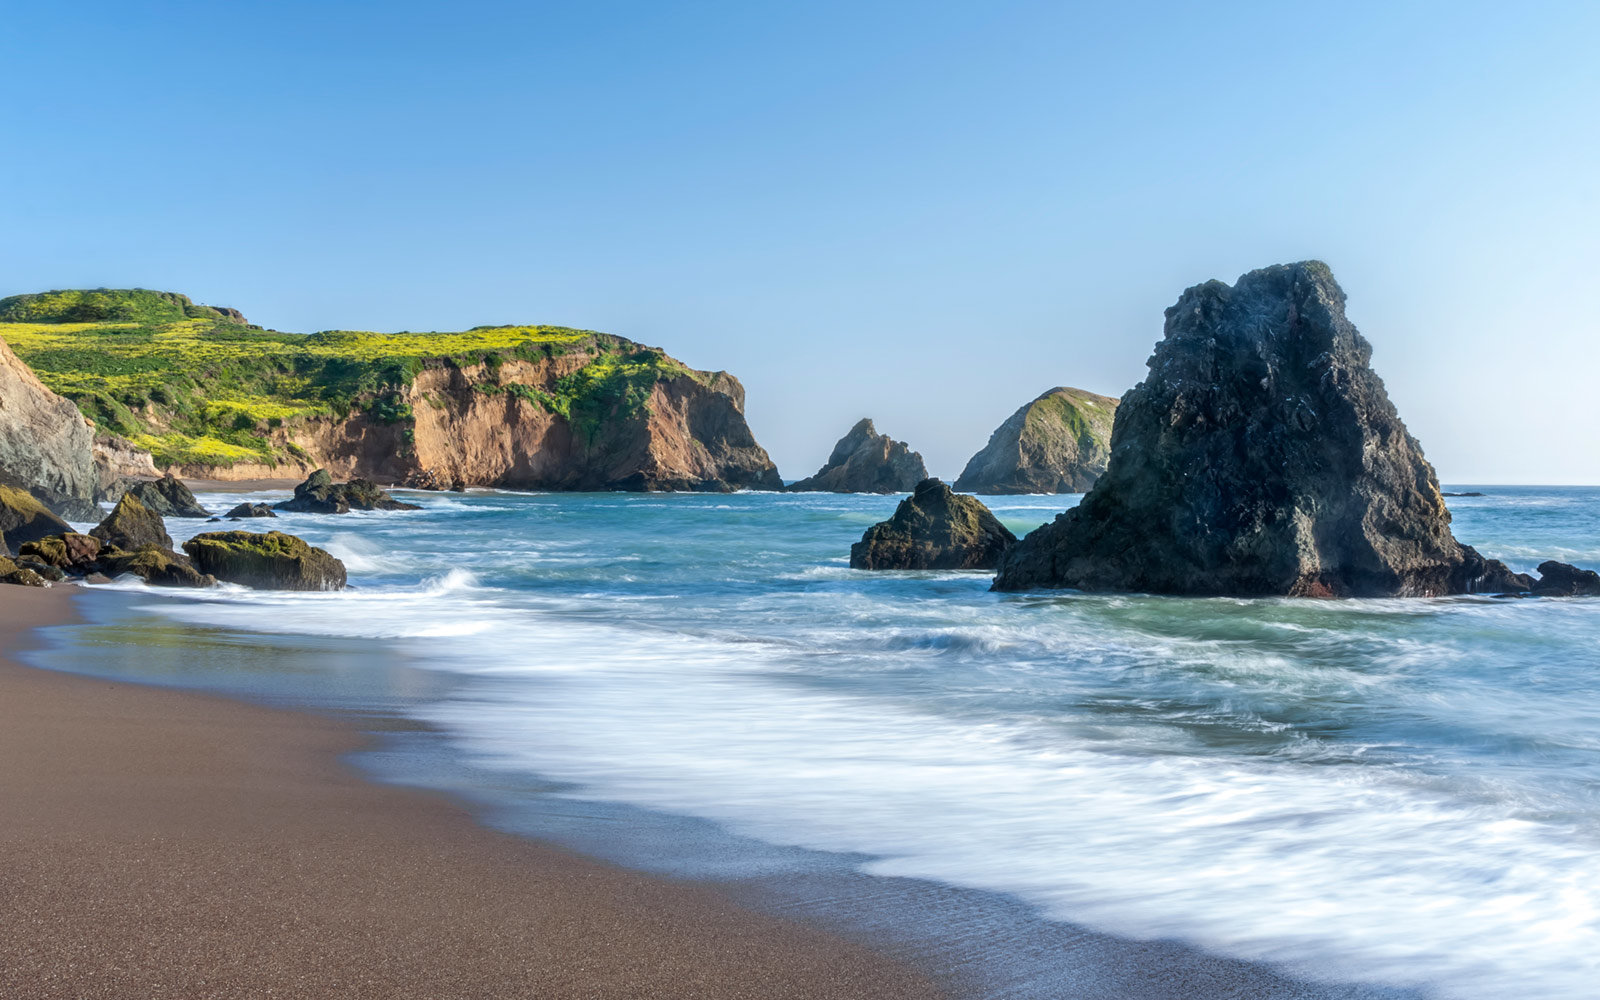 Cheap Real Estate Usa 9 Great California Beaches For A Relaxing Day On The Coast